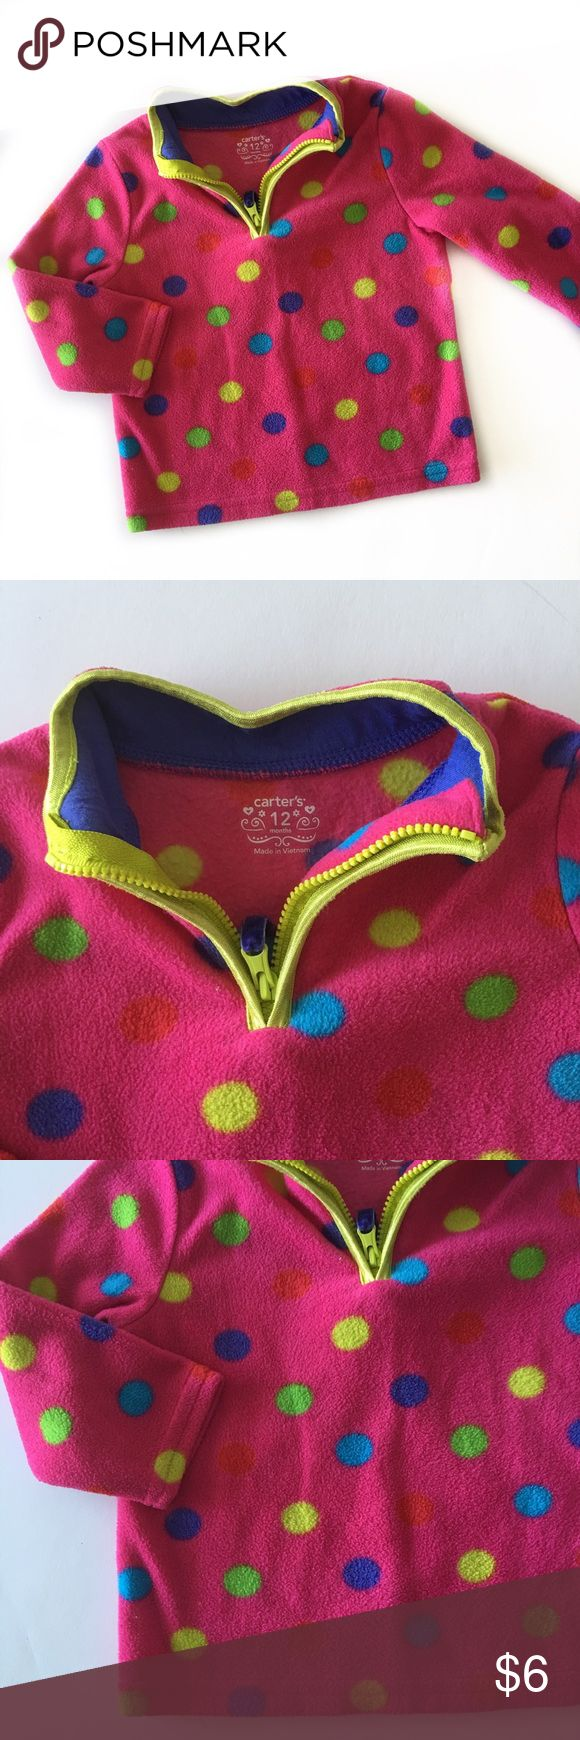 Carter's Fleece Pullover Super soft and cumfy, like new! Bright neon colored spots and lime green piping around the neck and zipper. Carter's Shirts & Tops Sweatshirts & Hoodies